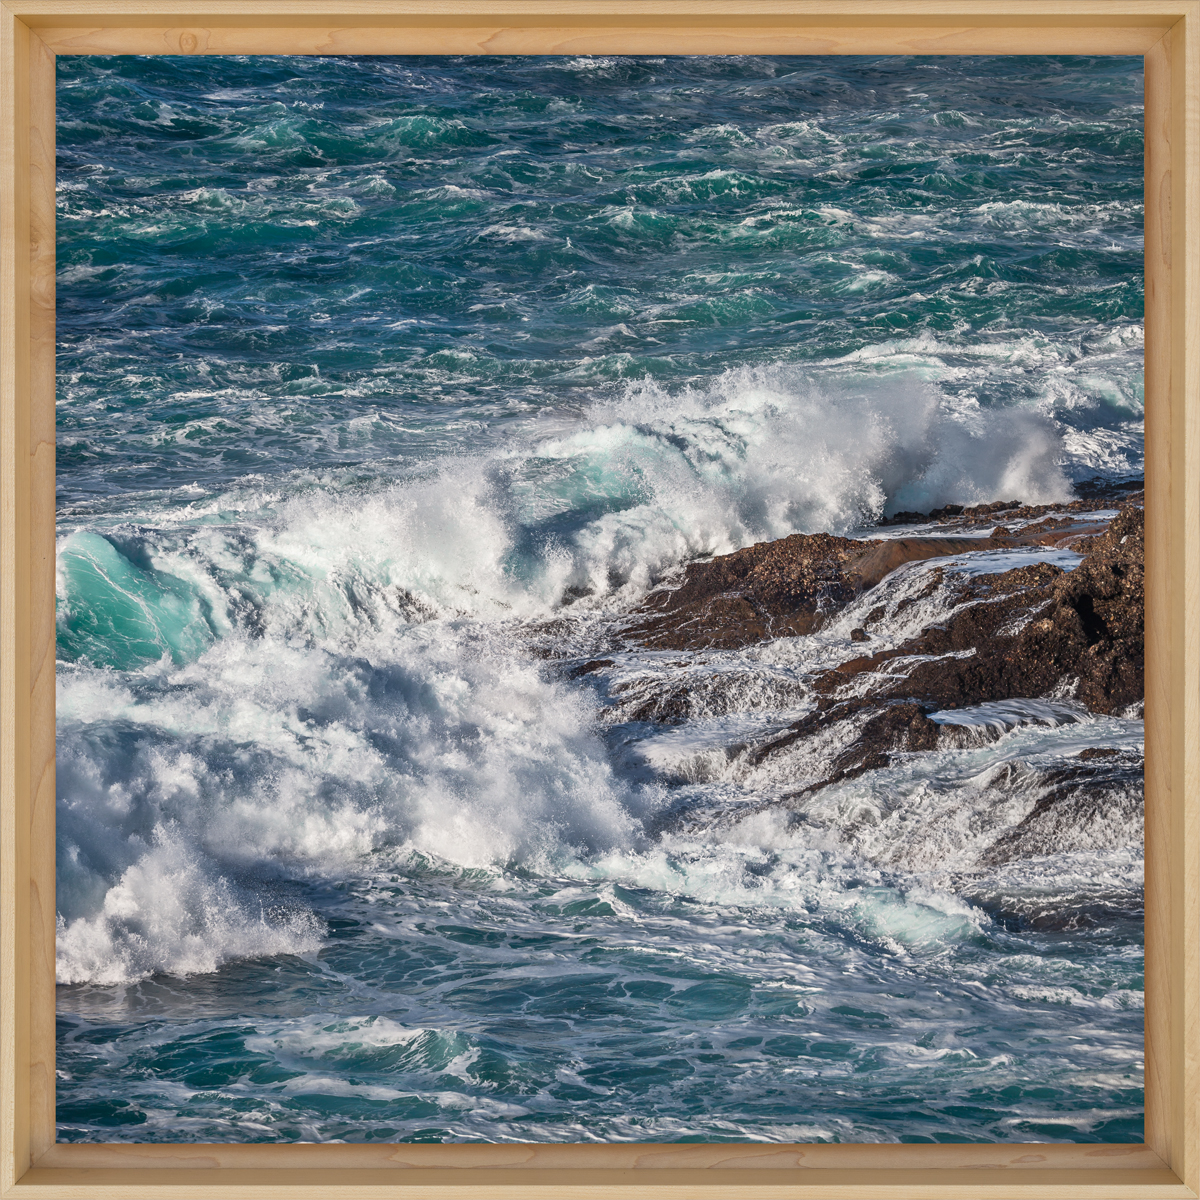 Point-Lobos-Surge.jpg